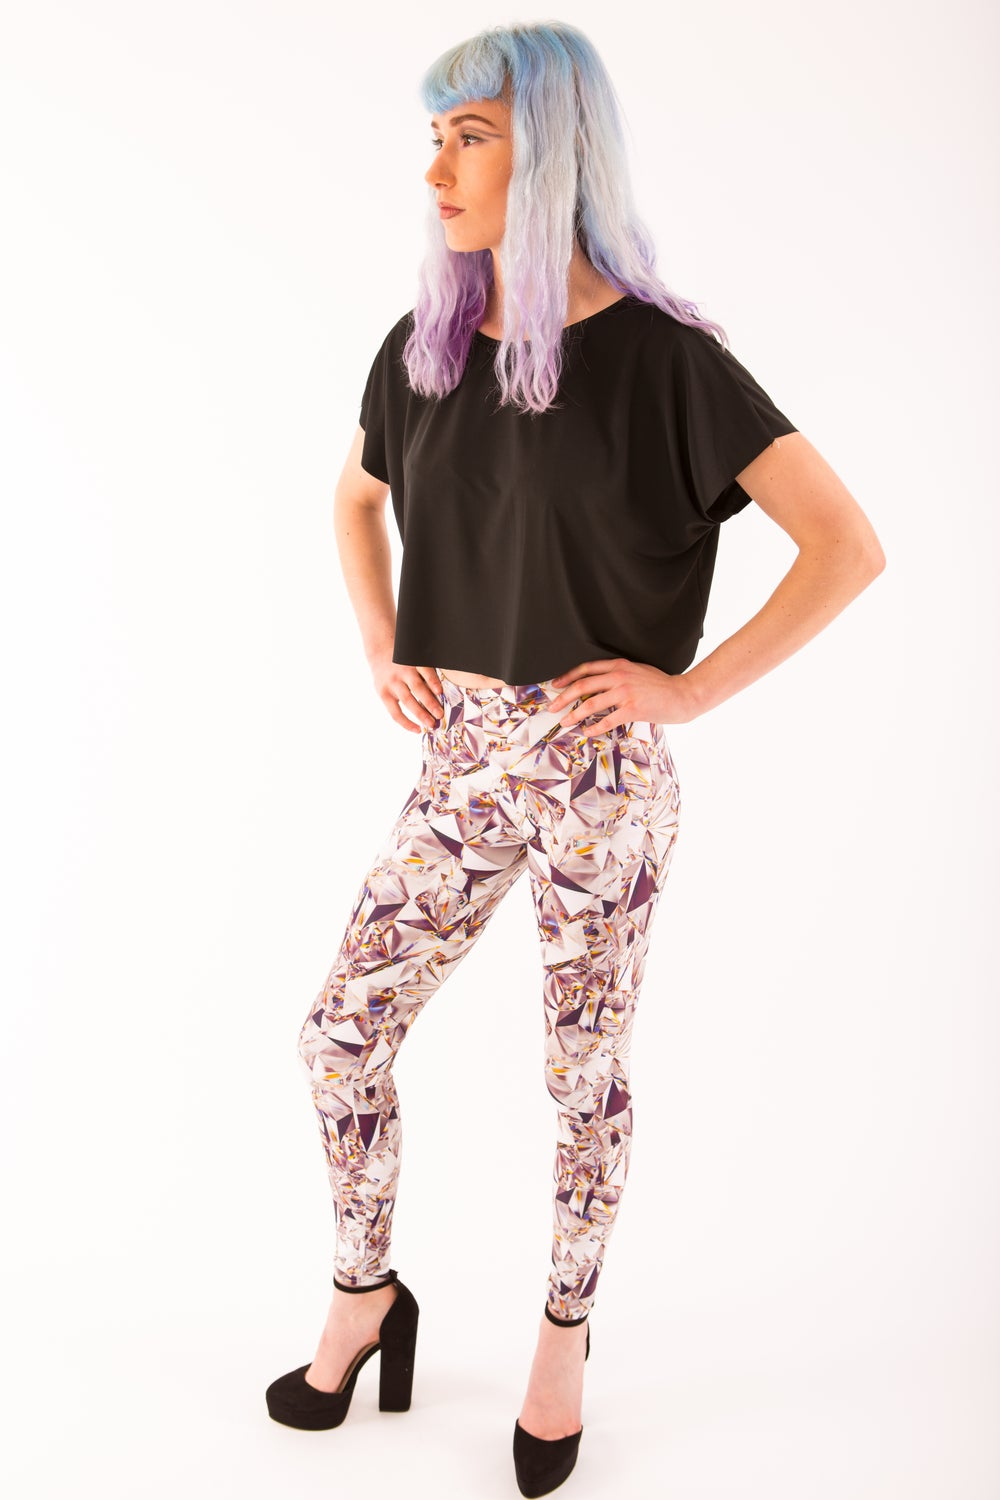 Image of Shattered Glass Leggings